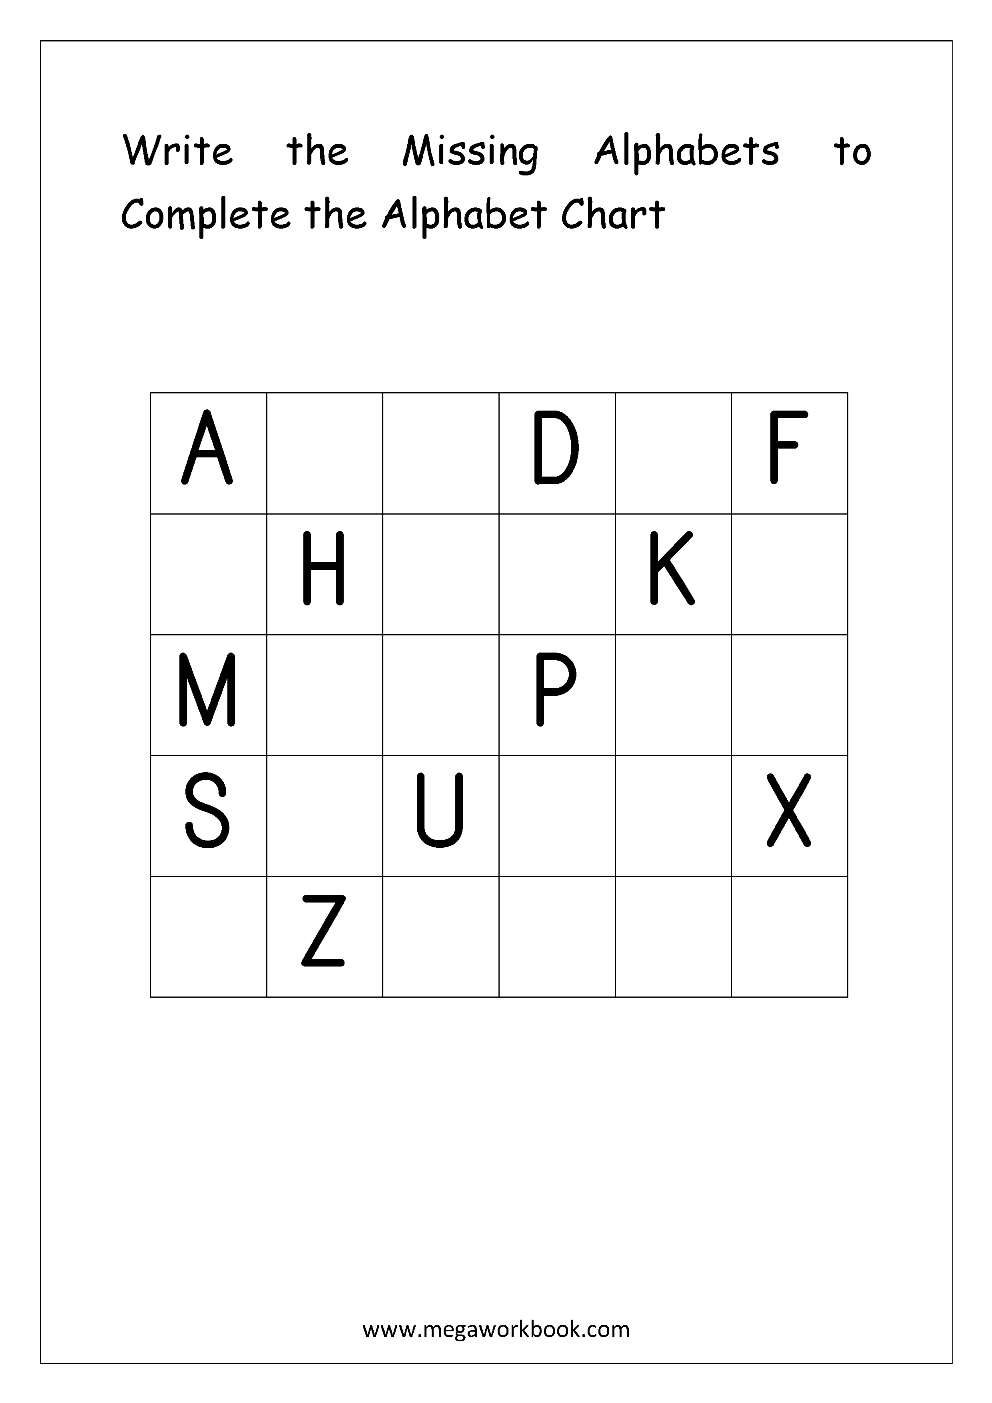 Free English Worksheets - Alphabetical Sequence for Alphabet Order Worksheets For Kindergarten